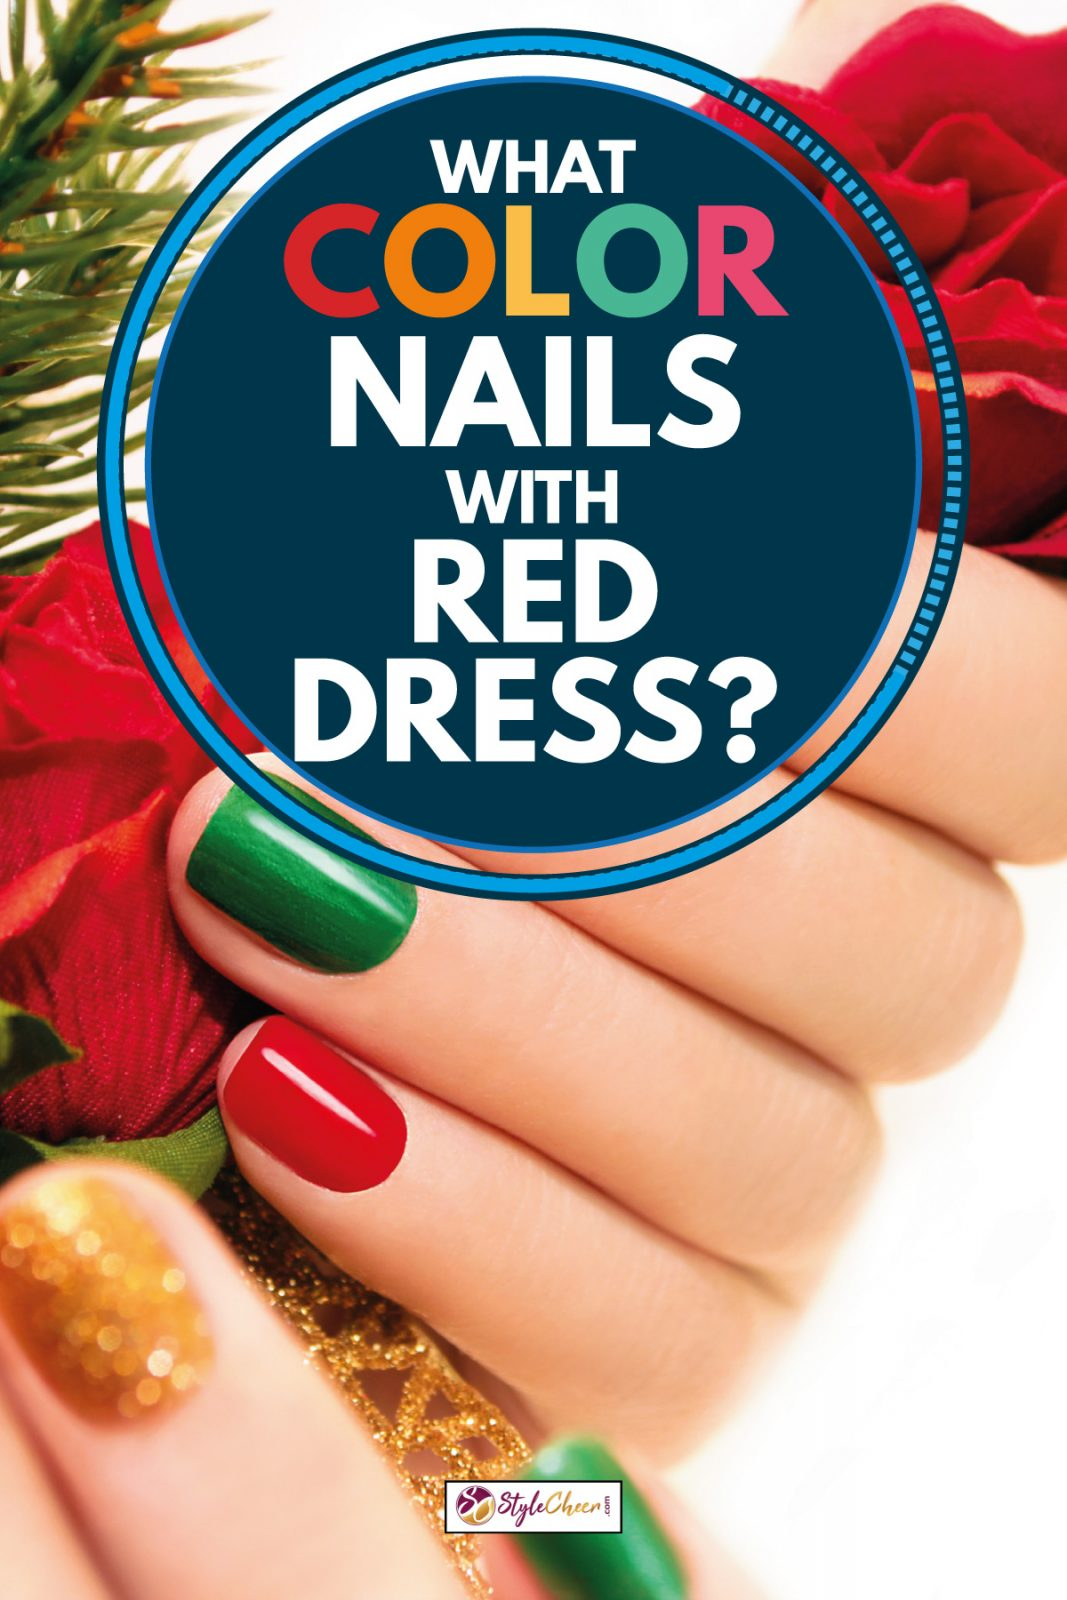 Multicolored nail on a woman's hand holding flowers, What Color Nails With Red Dress?